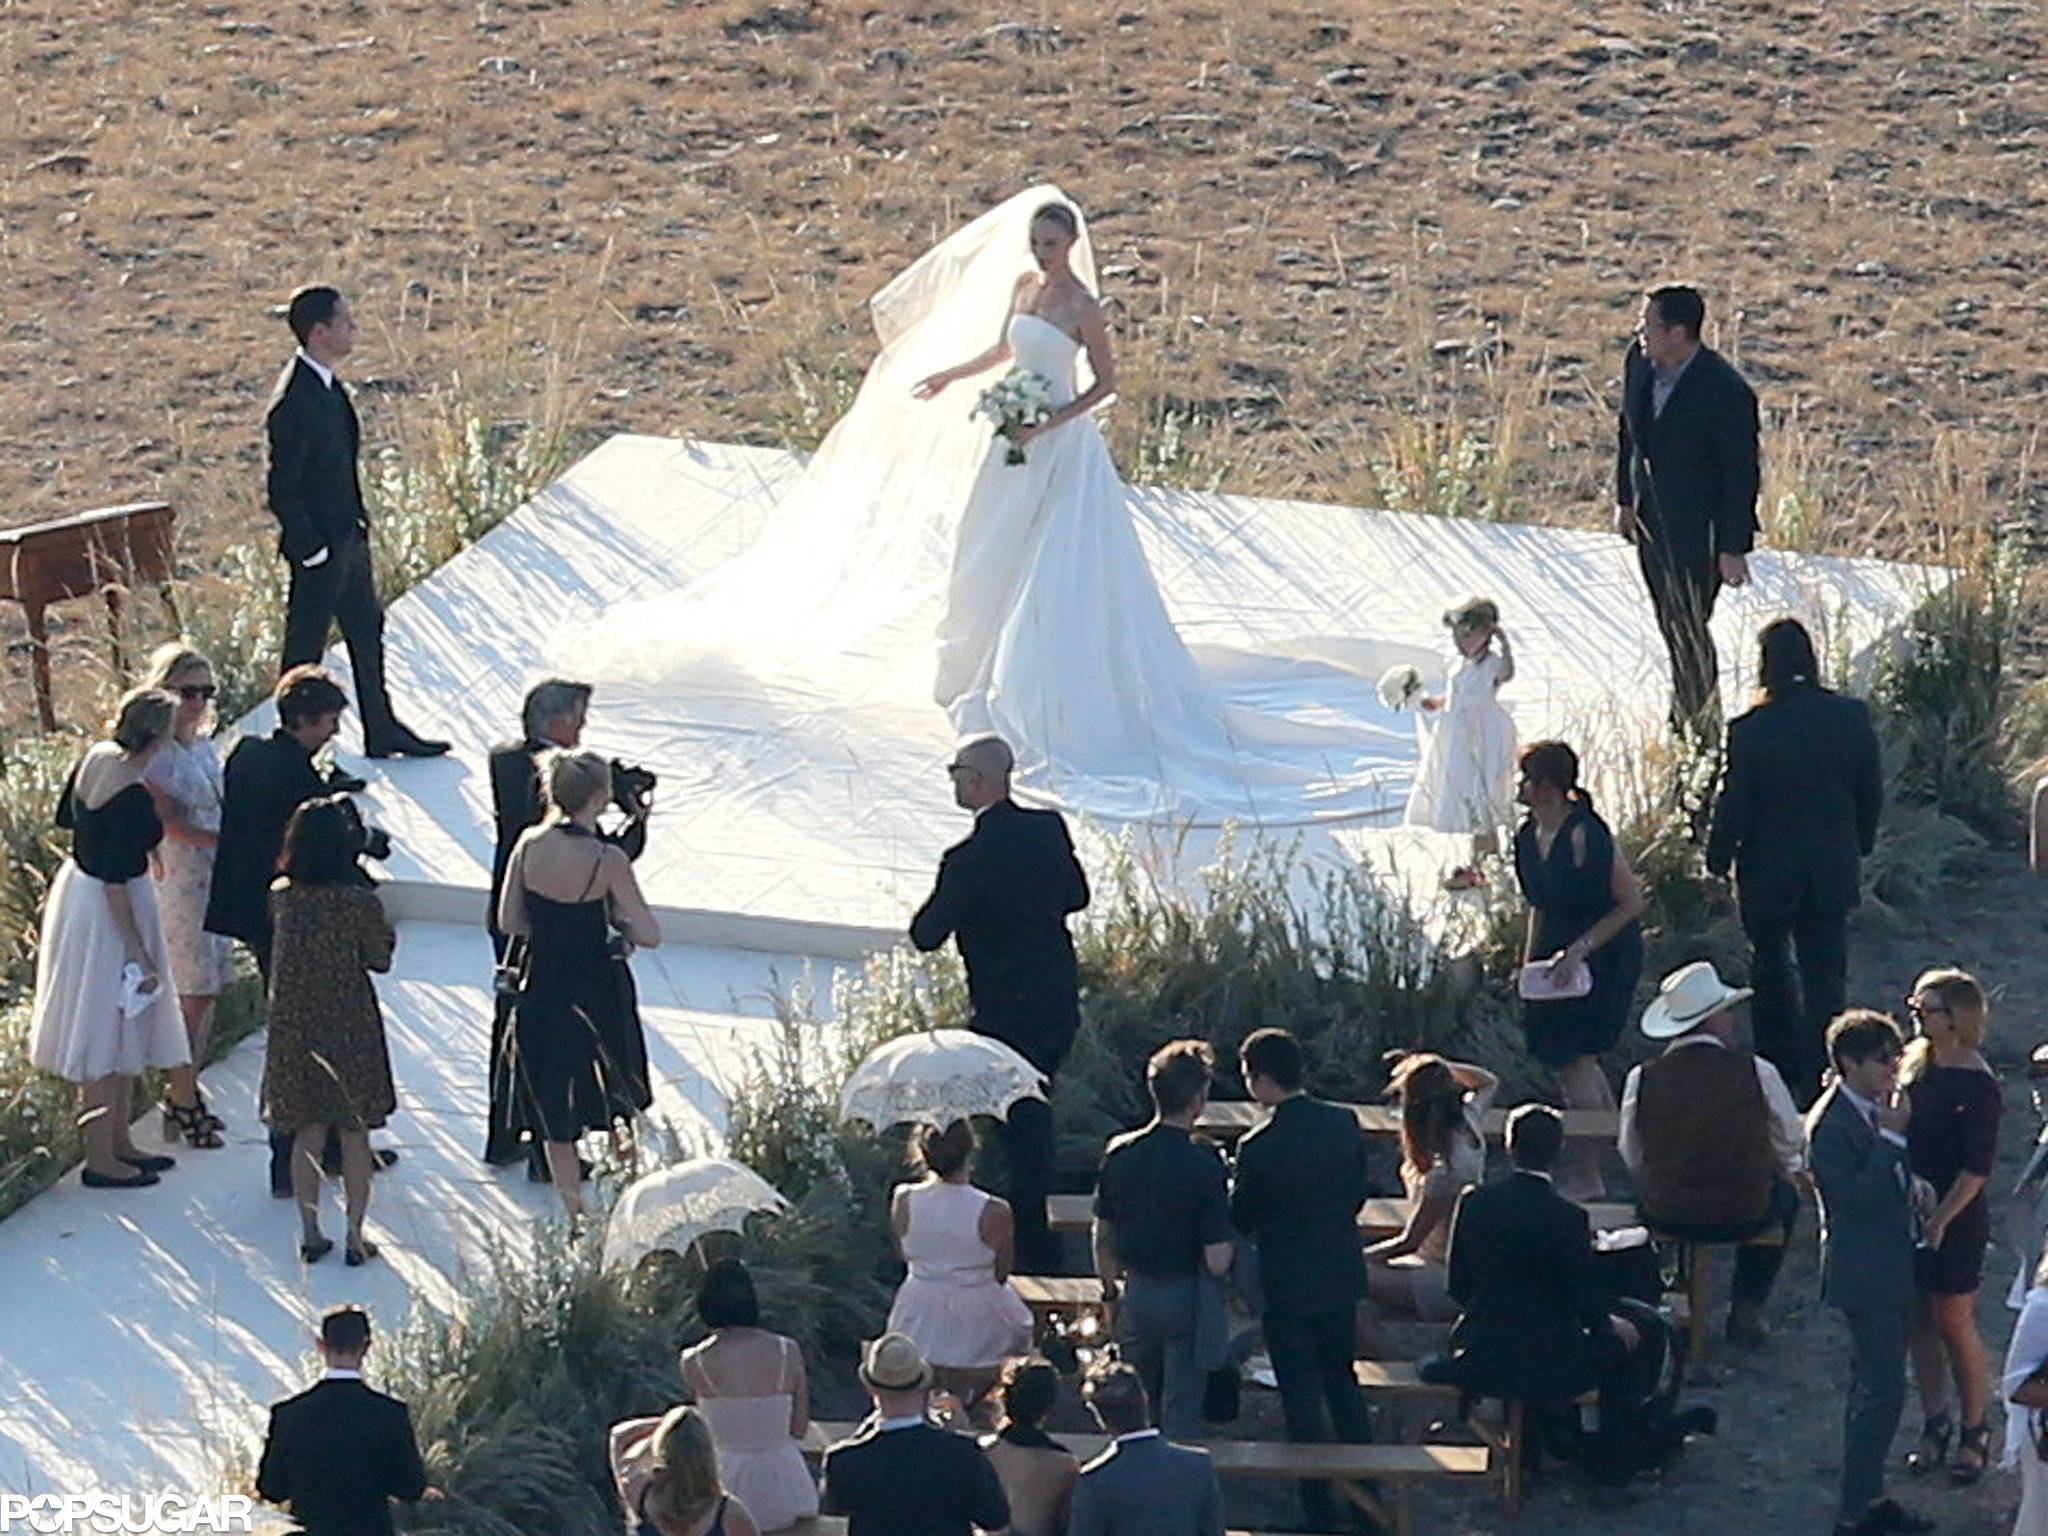 Kate Bosworth's veil caught the wind while she posed for pictures.